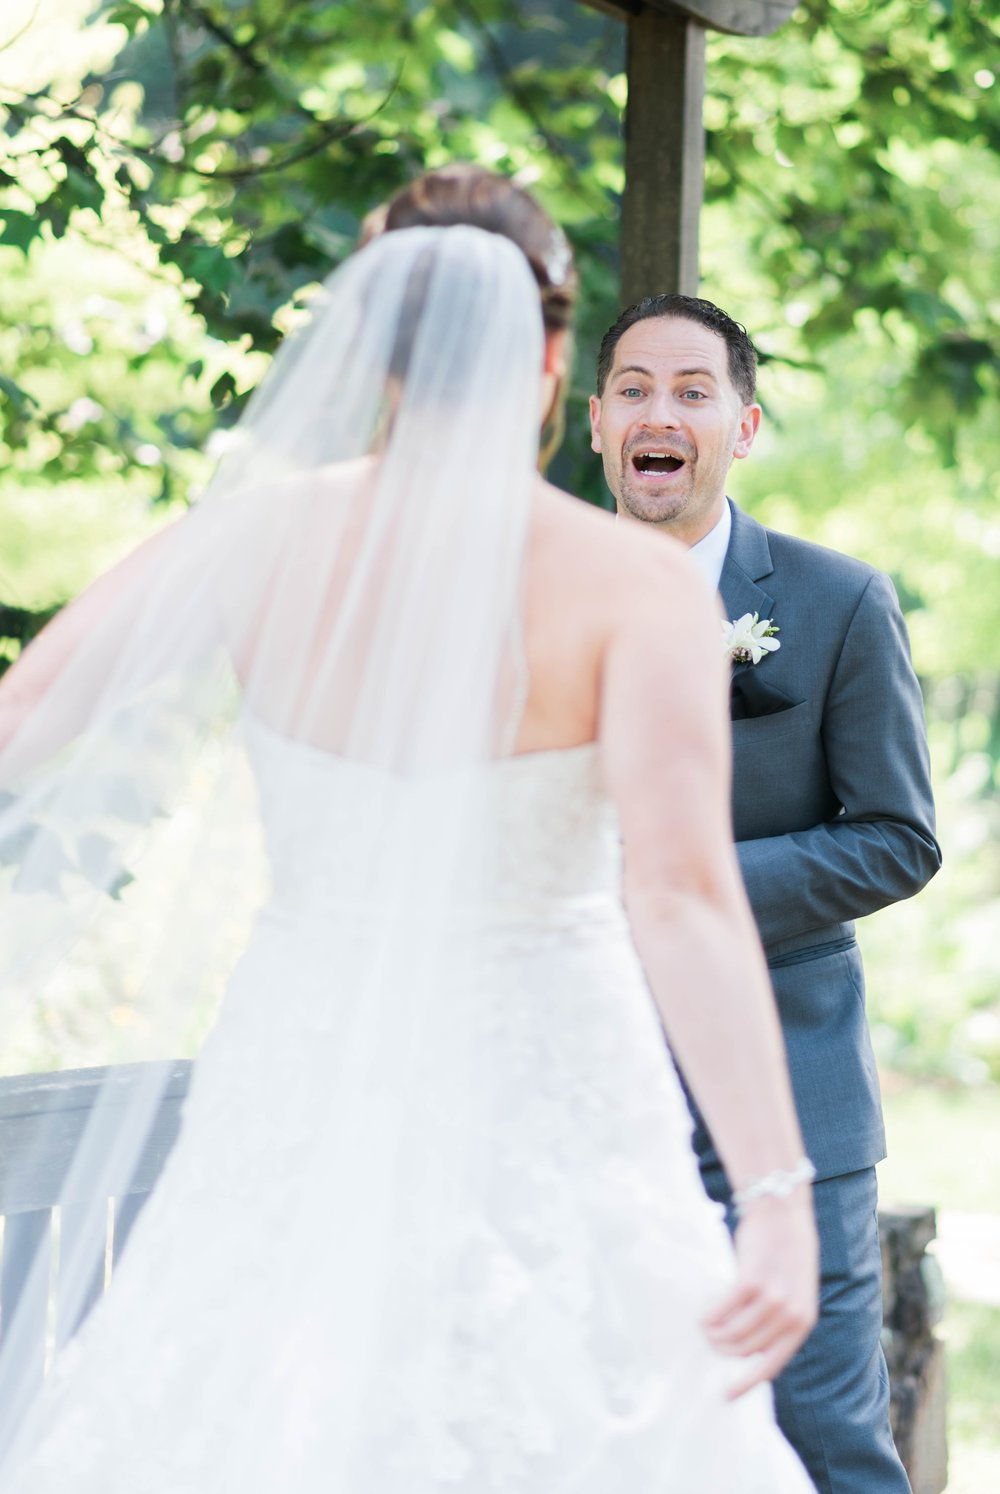 TheAtriumatMeadowlark_Virginiawedding photographer_lynchburgweddingphotographer_DCweddingPhotographer_KristinAaron 34.jpg